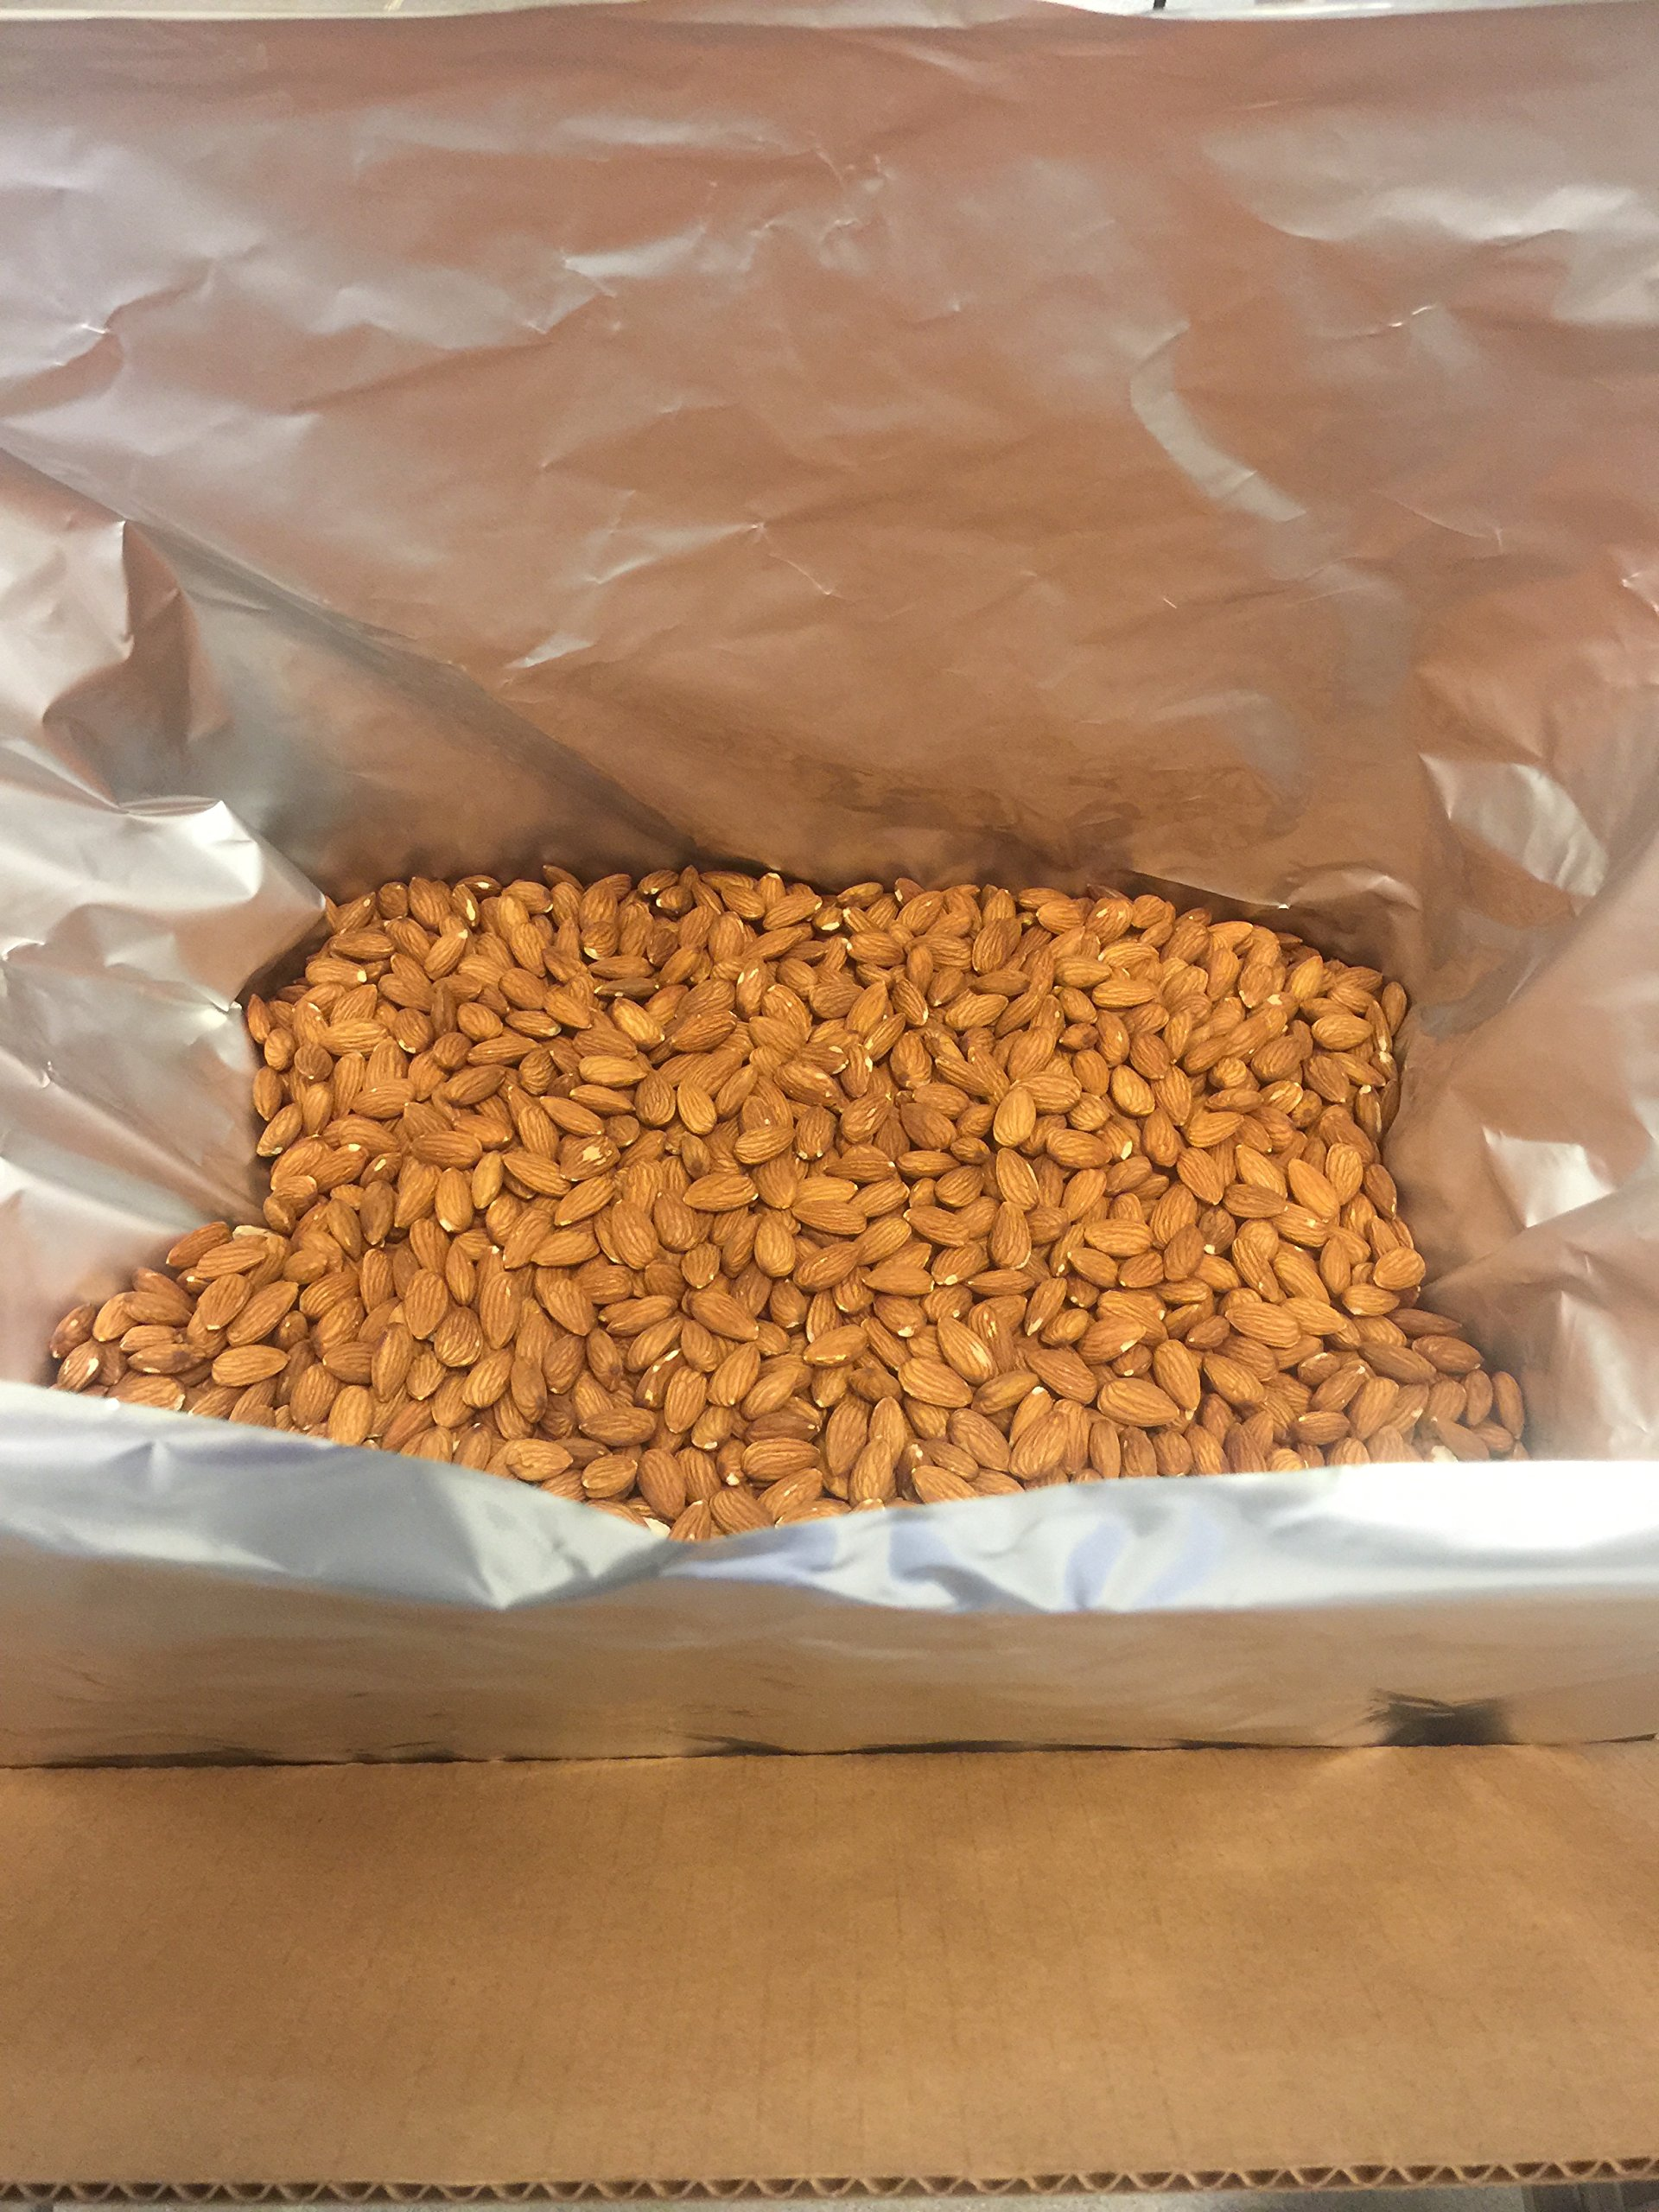 Heart Ridge Farms Bulk Whole Natural Raw California Almonds Packaged in Air Free Foil Bag to Maintain Highest Quality Freshness (10 lb box) by Heart Ridge Farms (Image #1)